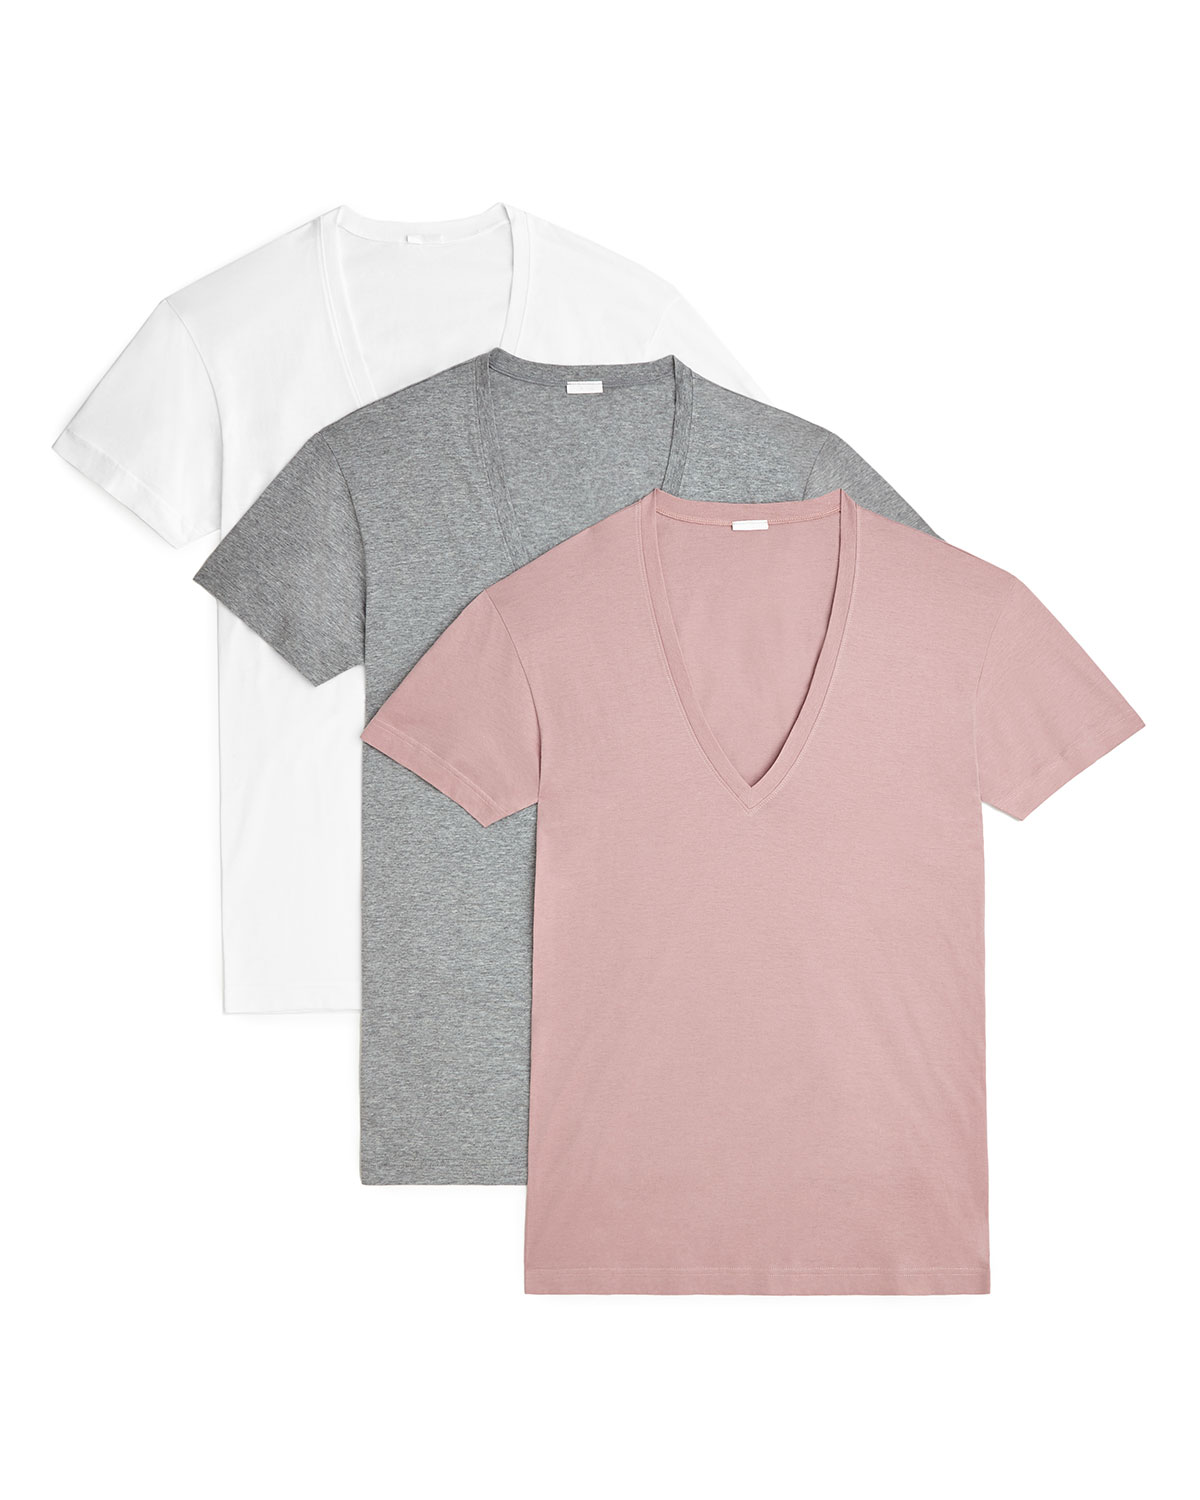 2(X)ist T-shirts MEN'S 3-PACK SLIM T-SHIRTS WITH DEEP V NECK